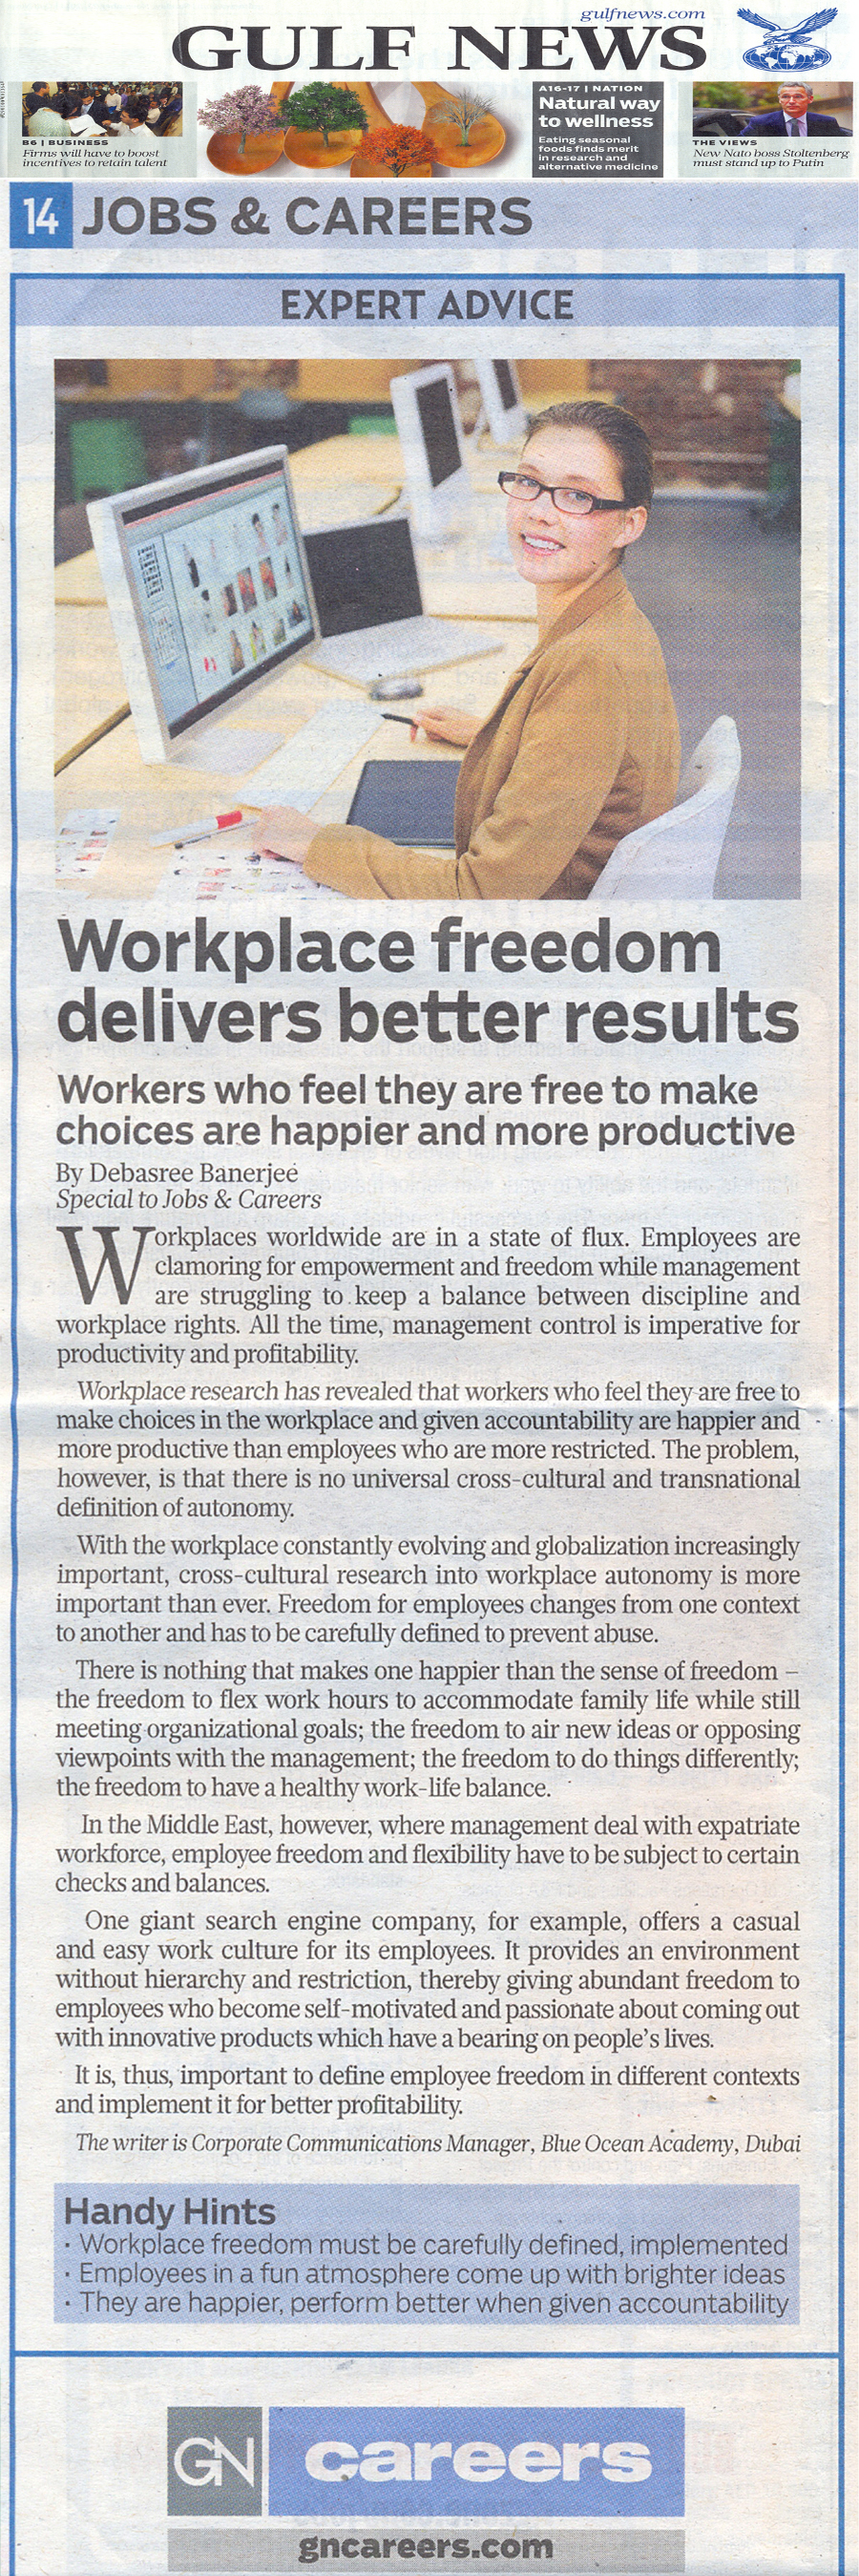 Workers who feel they are free to make choices are happier and more productive